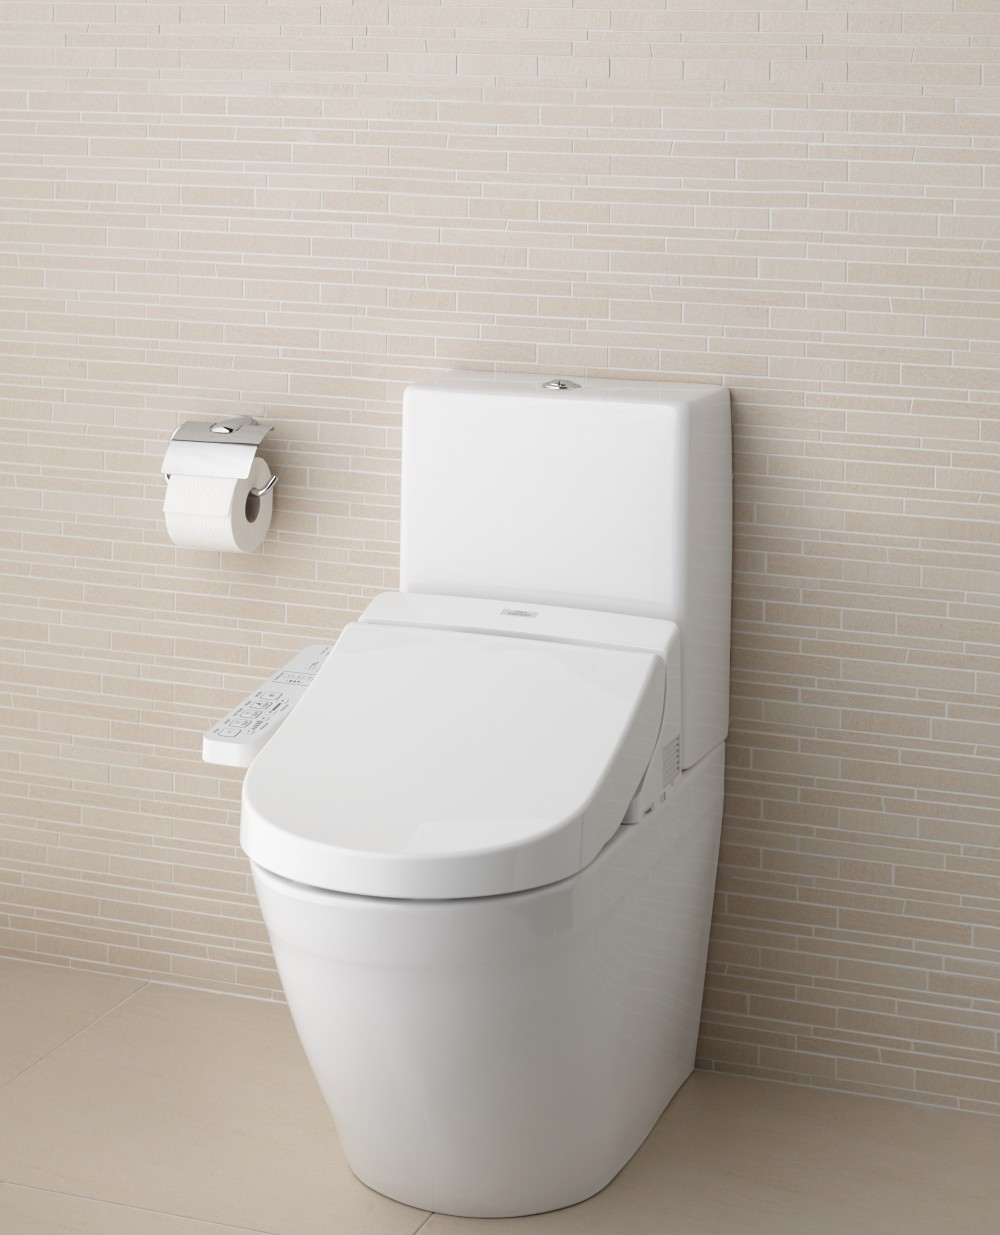 Combination Toto Washlet Ek 2 0 With Side Connections